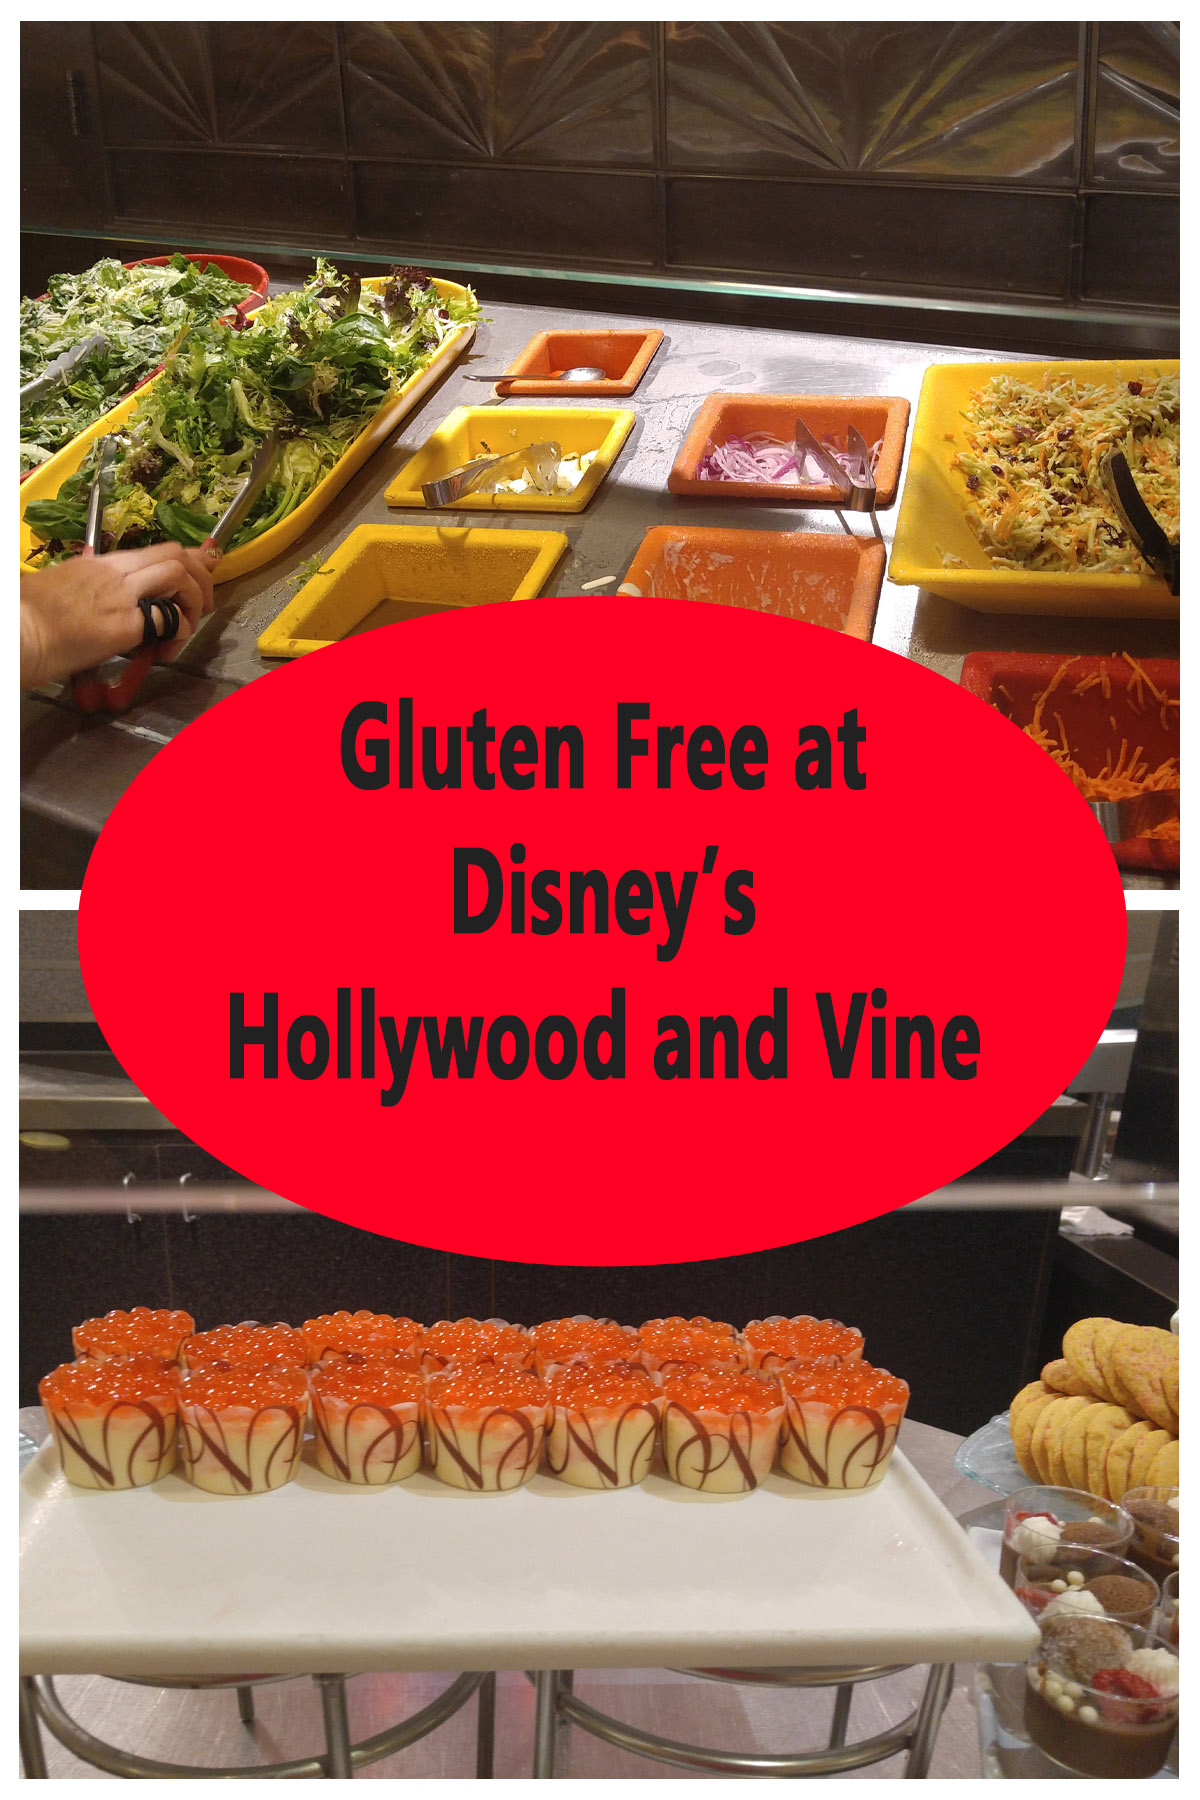 Eating Gluten Free at Hollywood and Vine at Disney's Hollywood Studios